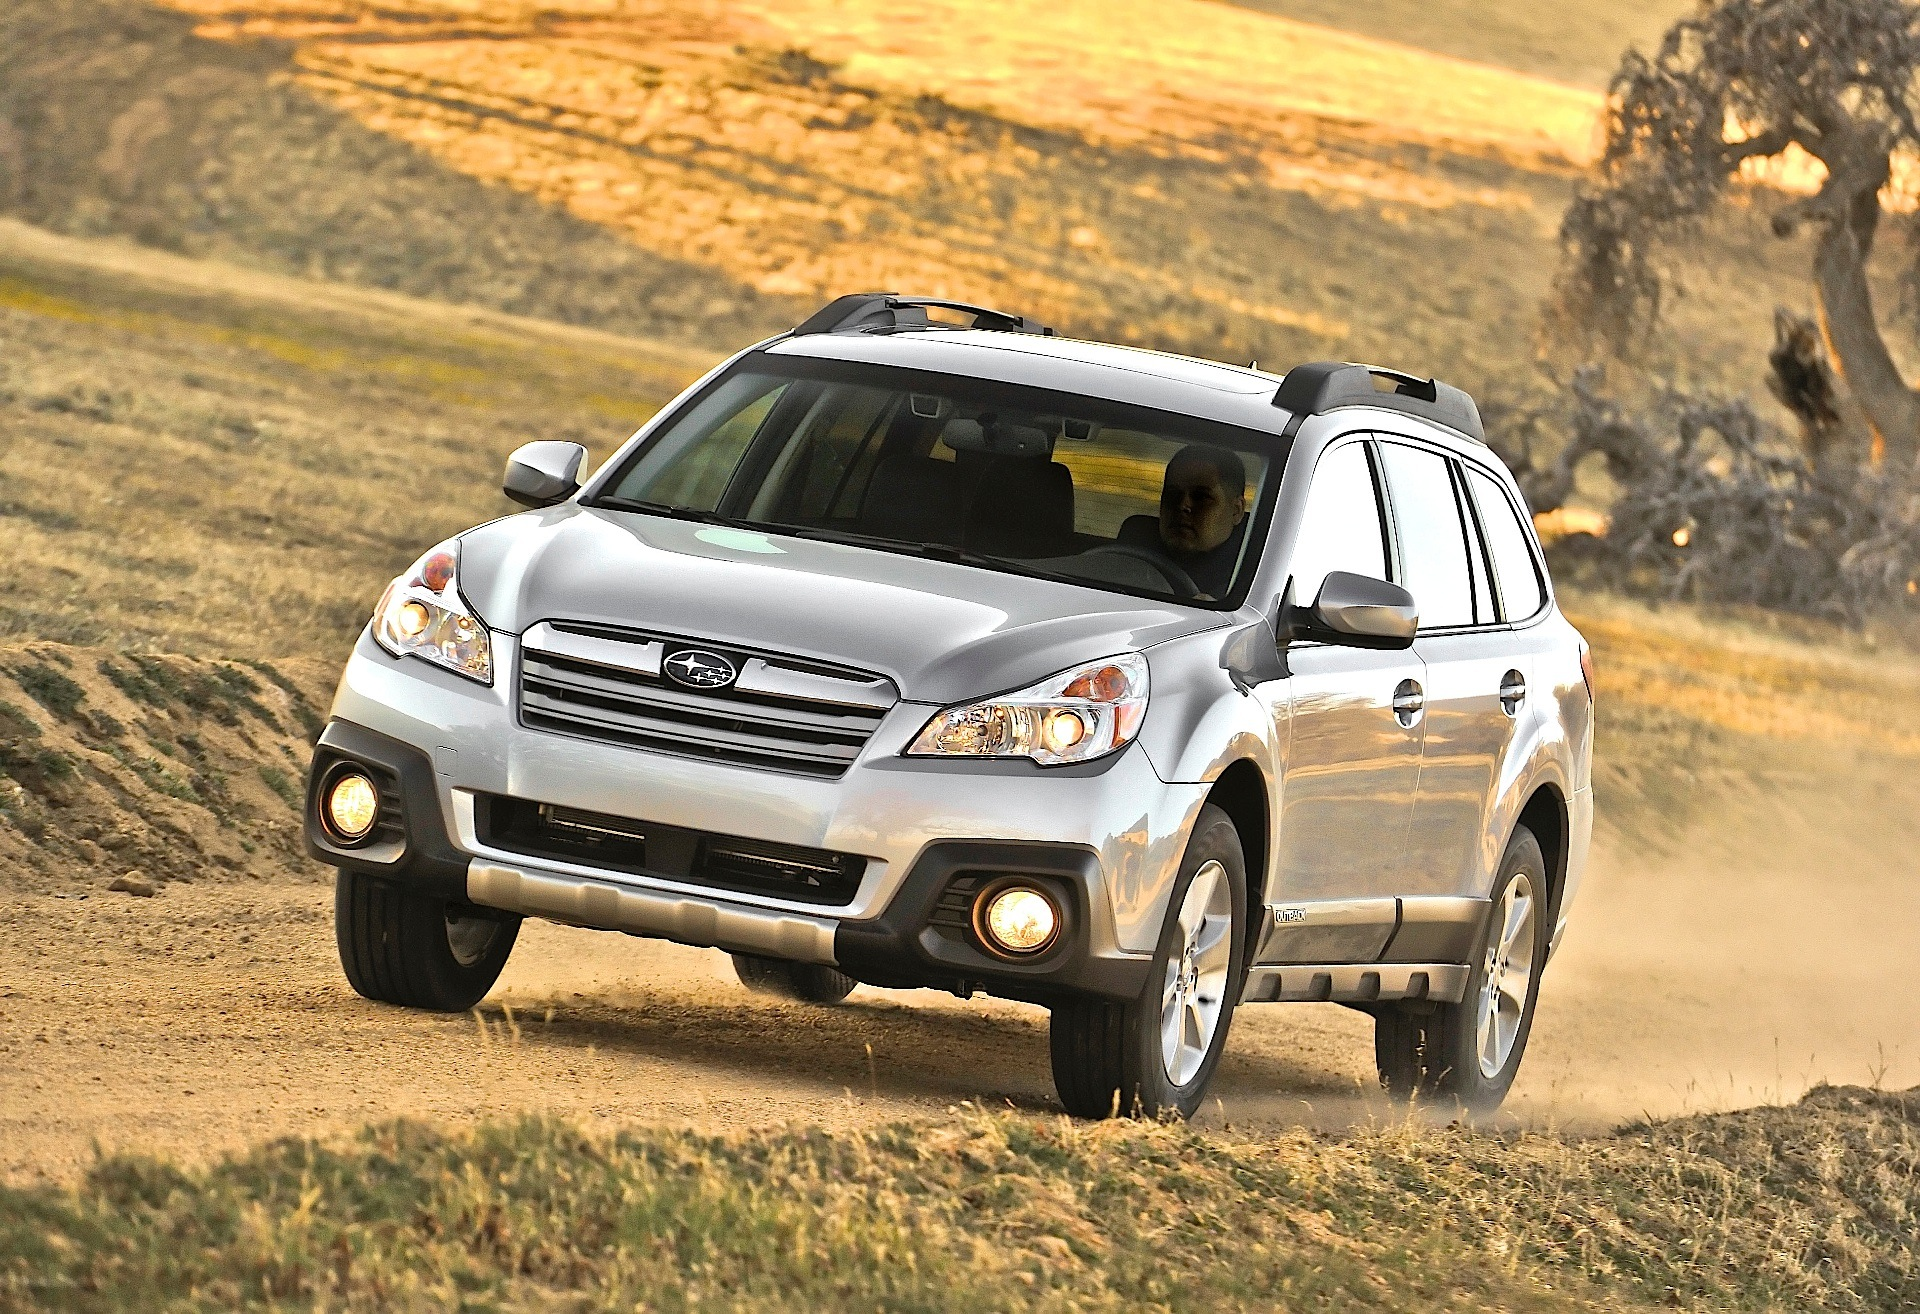 2009 Subaru Outback Prices, Reviews and Pictures | U.S ... |2009 Subaru Outback